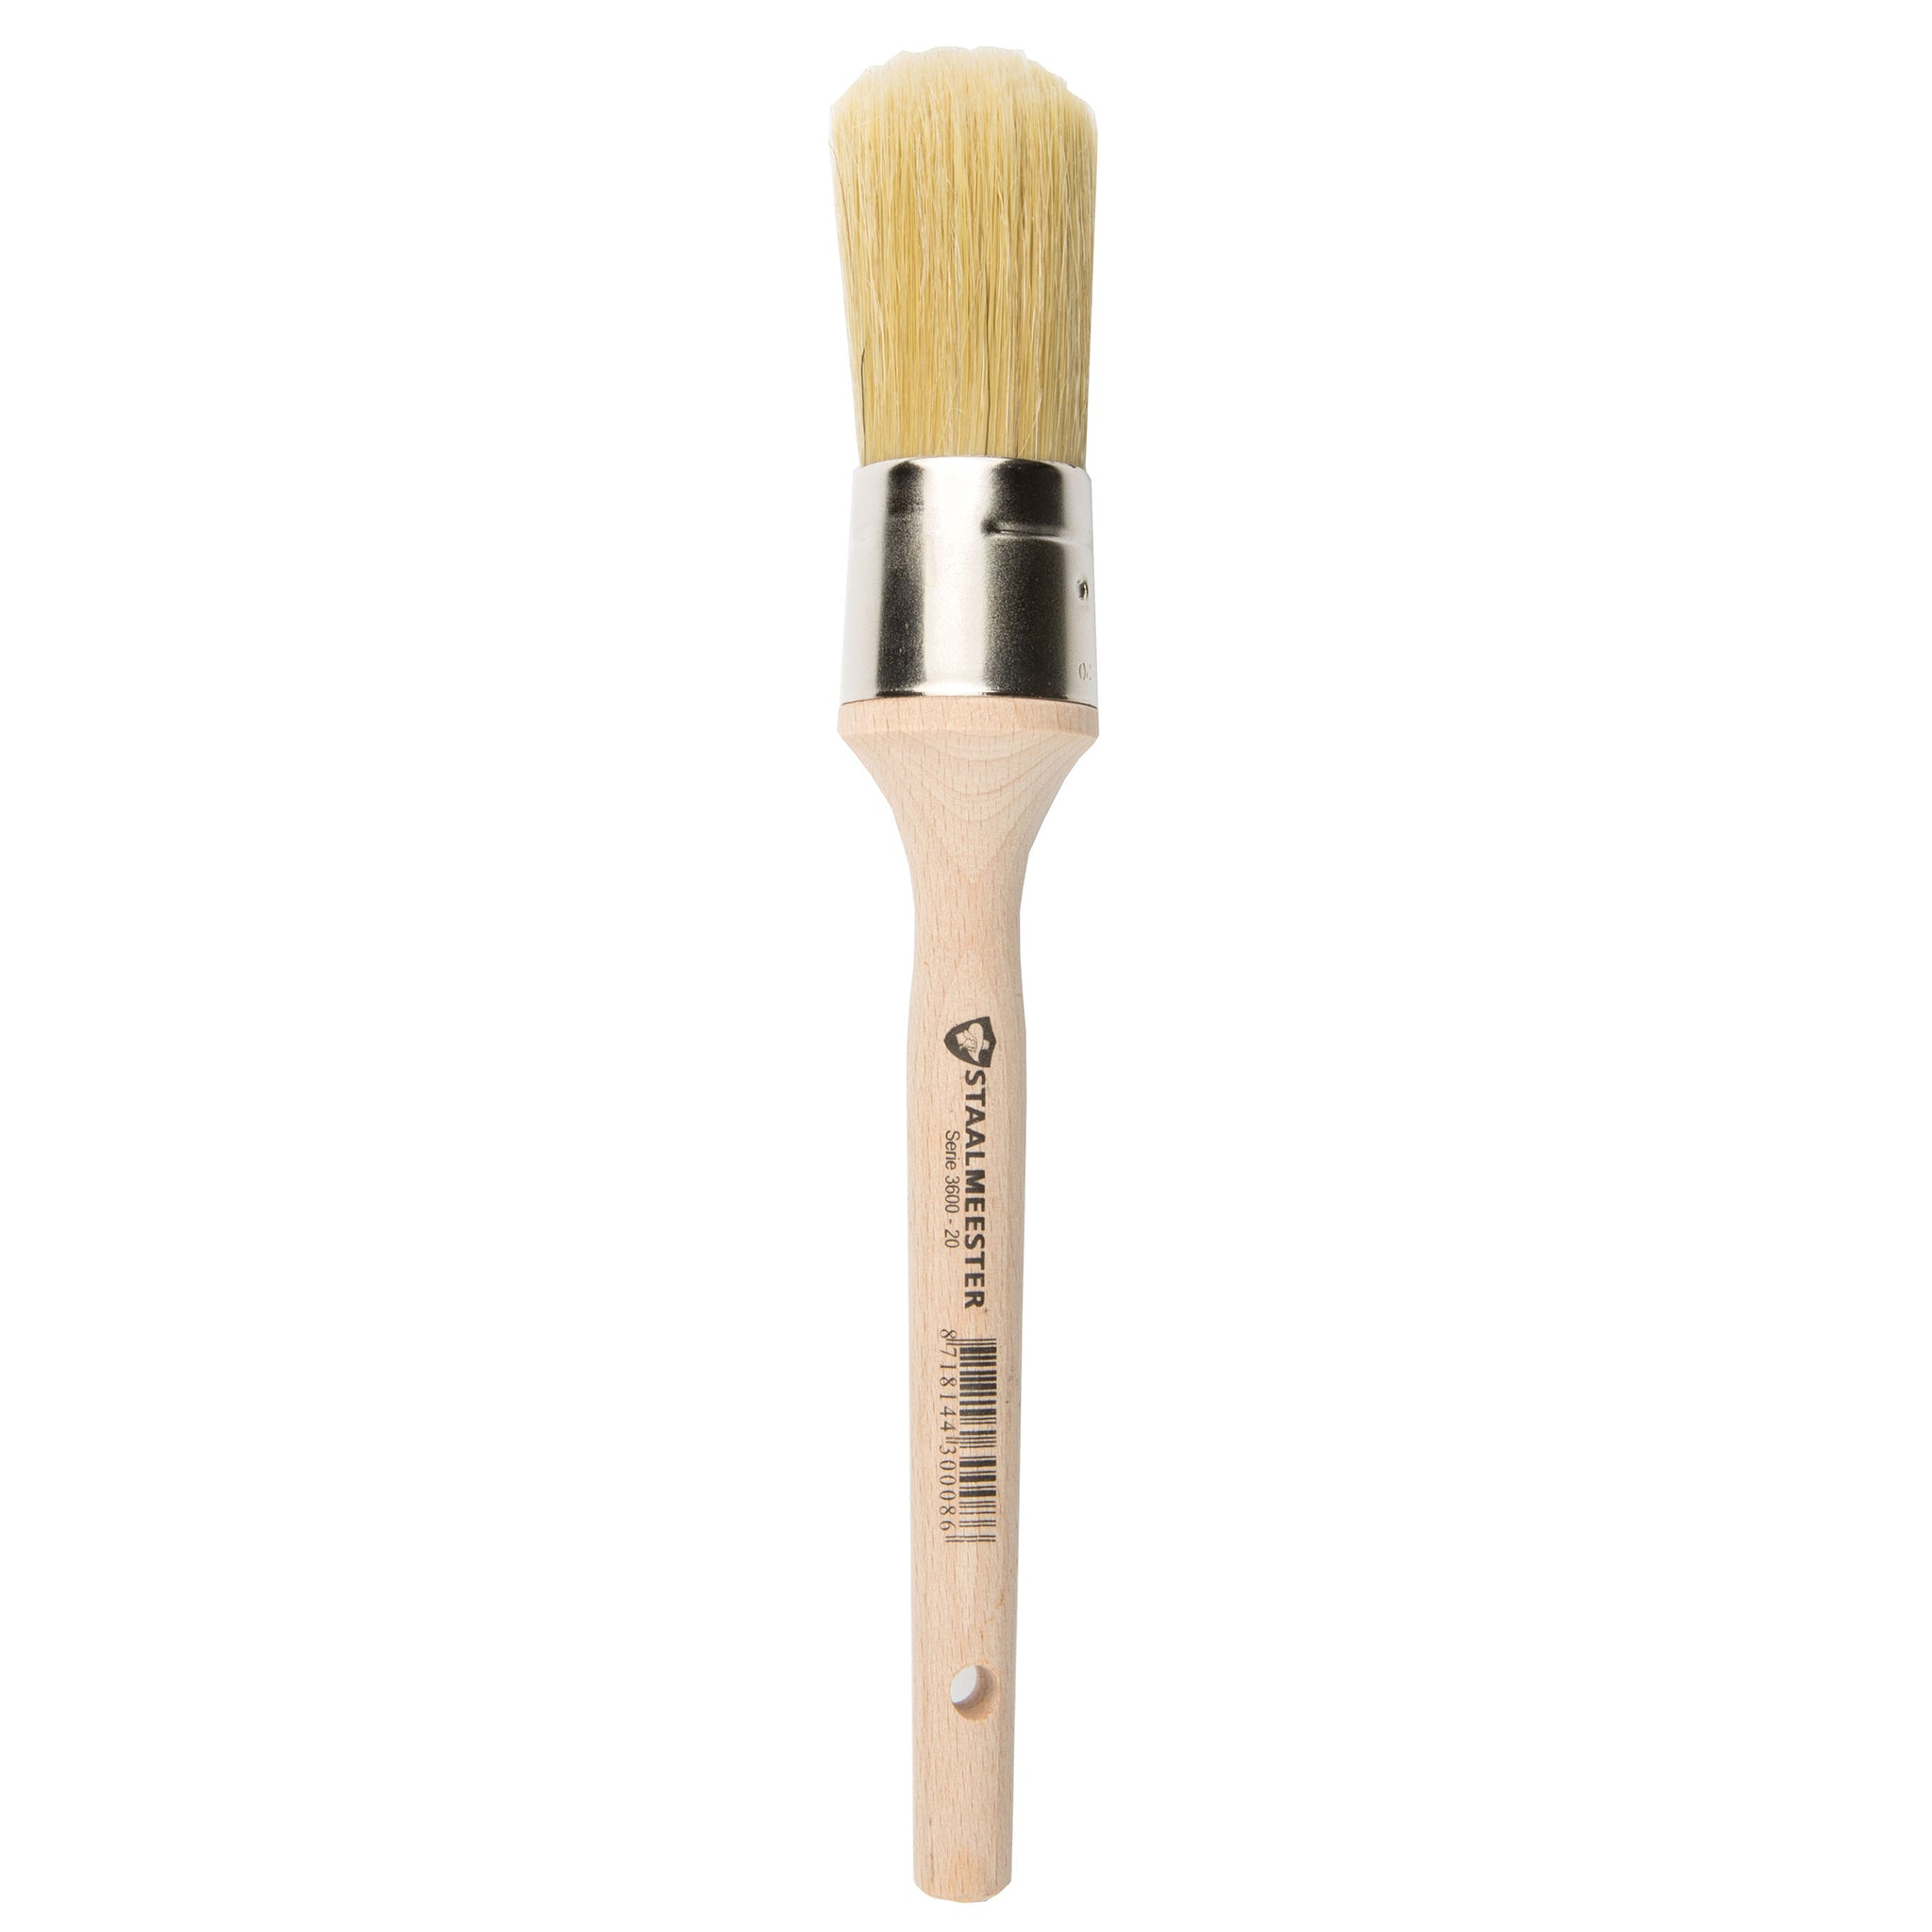 Staalmeester Brush - Natural Bristle Round #20